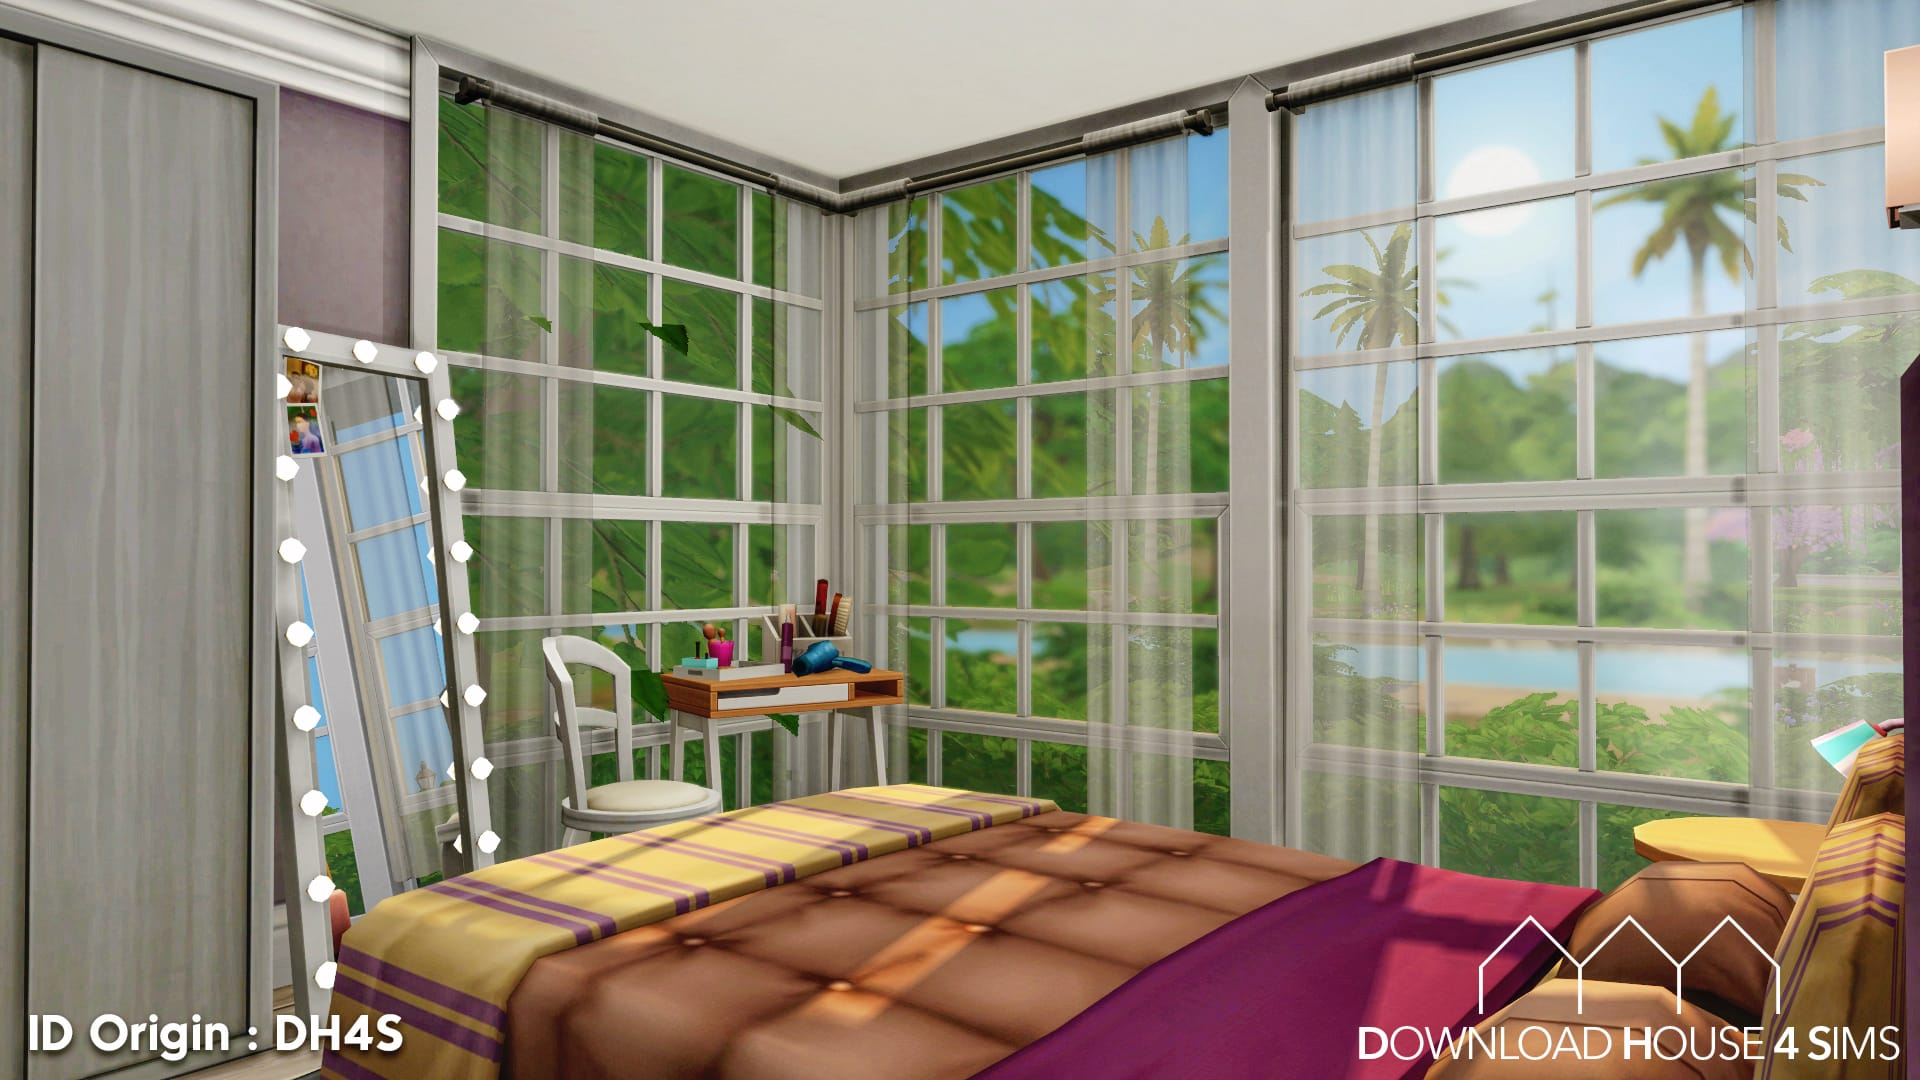 Family-Cottage-Sims-4-DH4S-download-house-4-sims-22